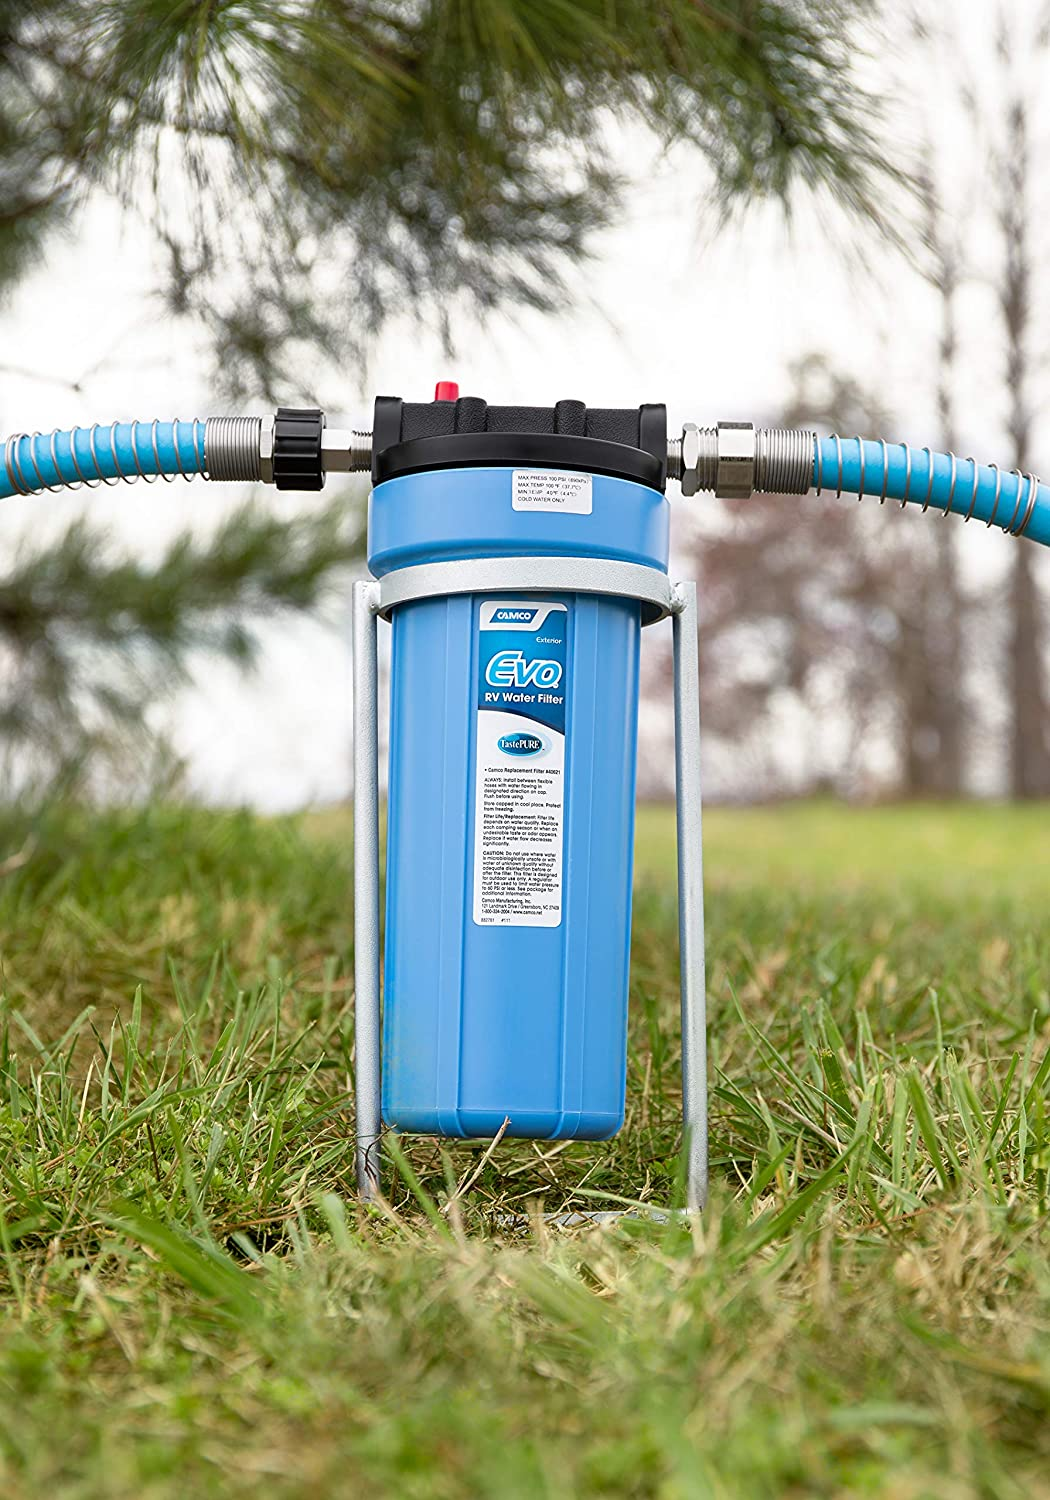 Amazon Com Camco Evo Premium Rv Marine Water Filter Greatly Reduces Bad Taste Odor Sediment Bacteria Chlorine And Much More 40631 Automotive